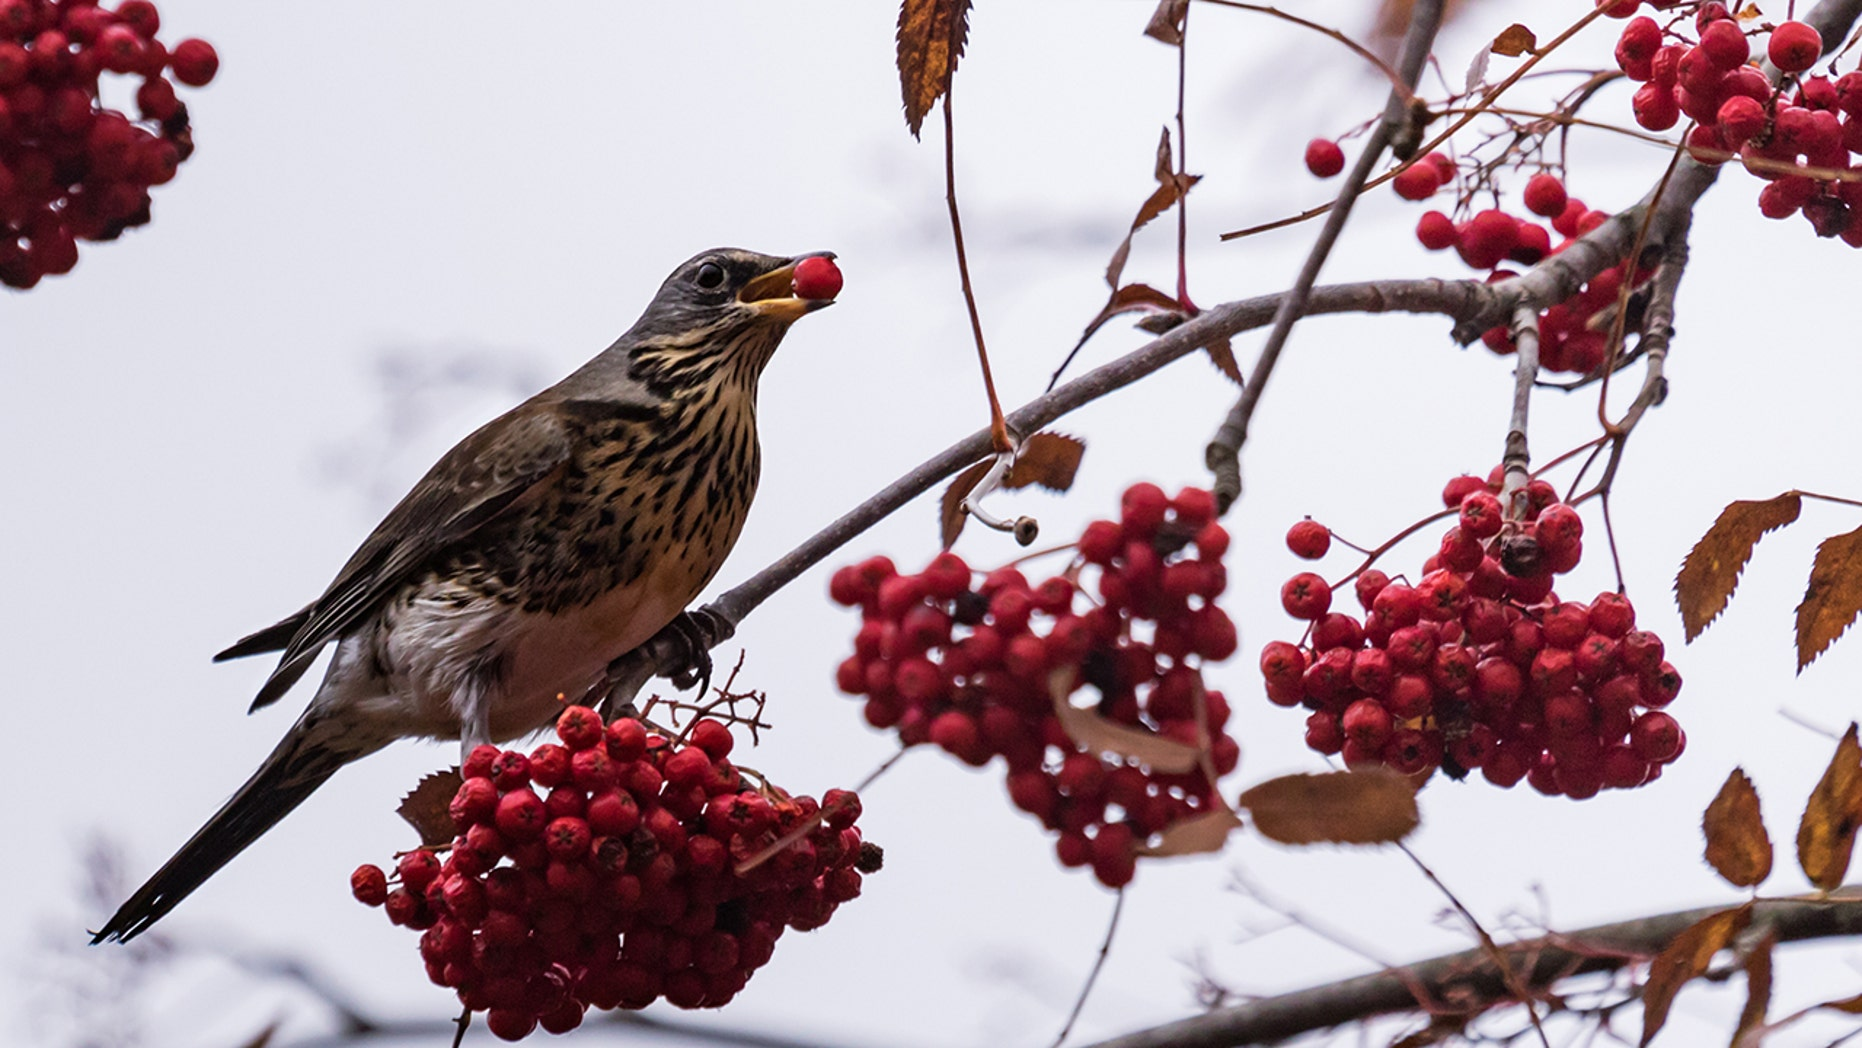 More Birds Are Getting Drunk This Year, MN Town Advises Residents